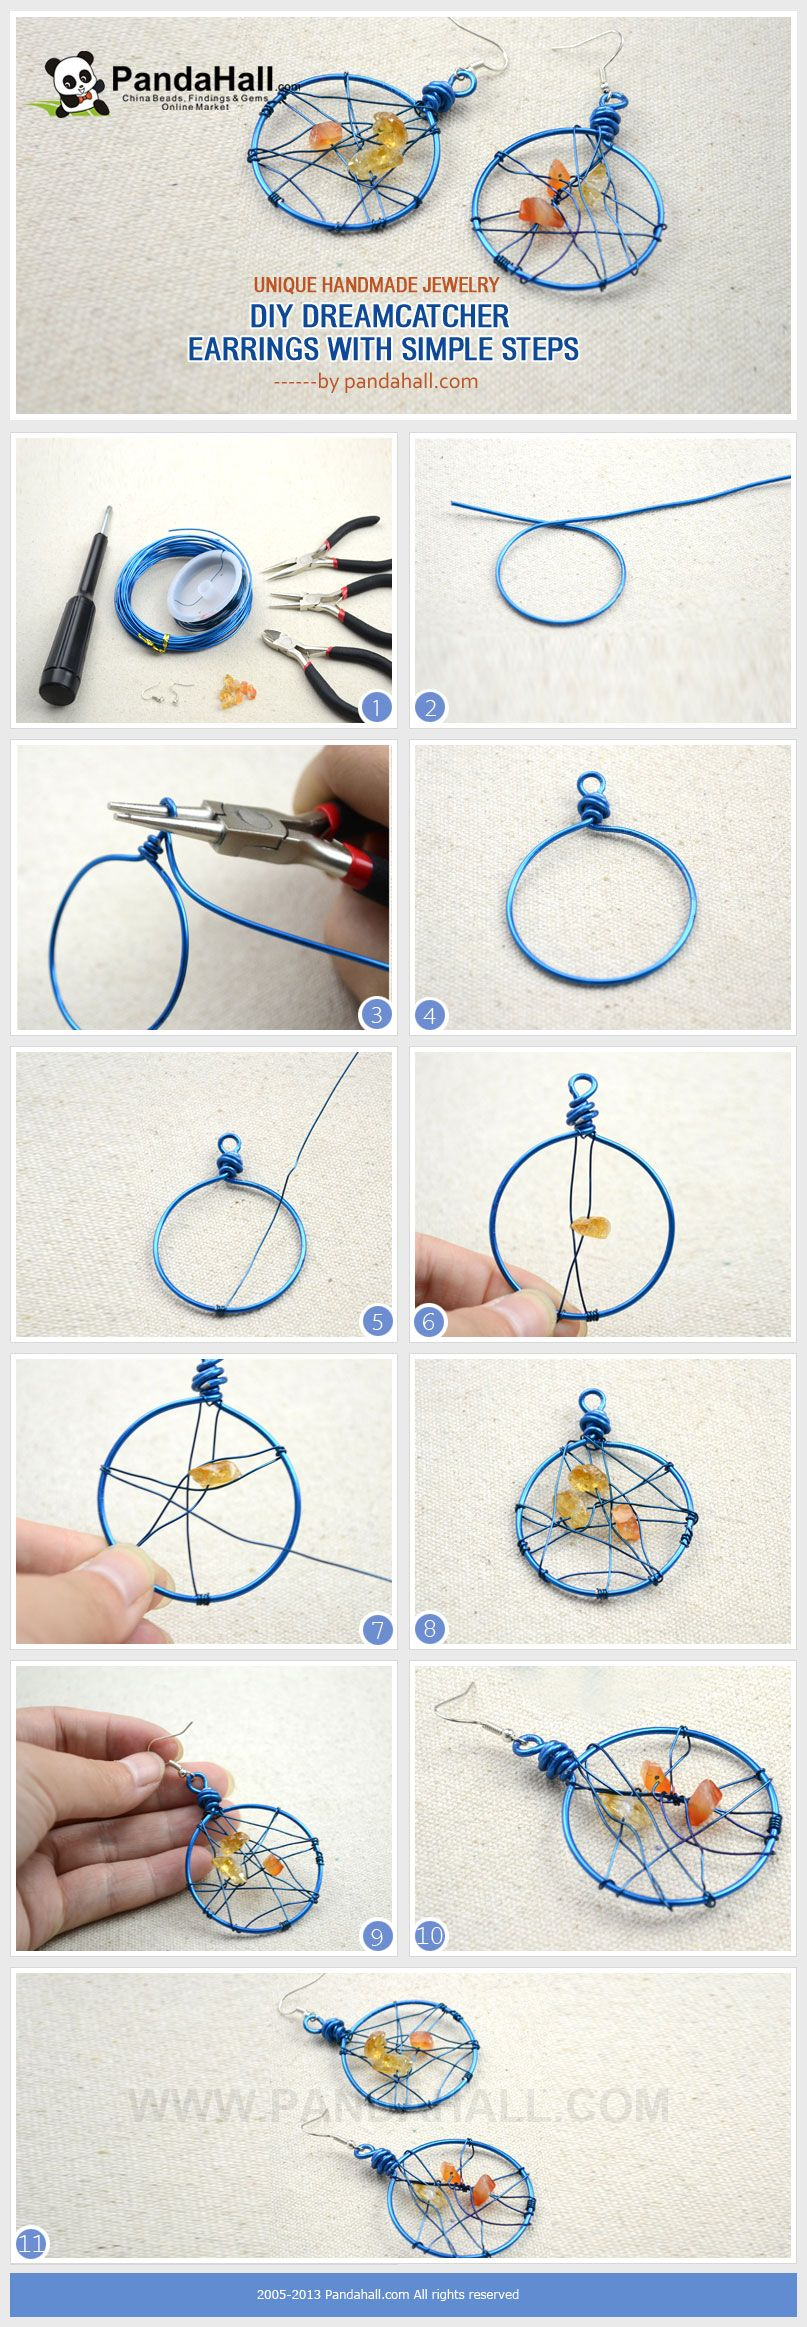 Unique handmade jewelry diy dreamcatcher earrings in 3 for How to make homemade dream catchers